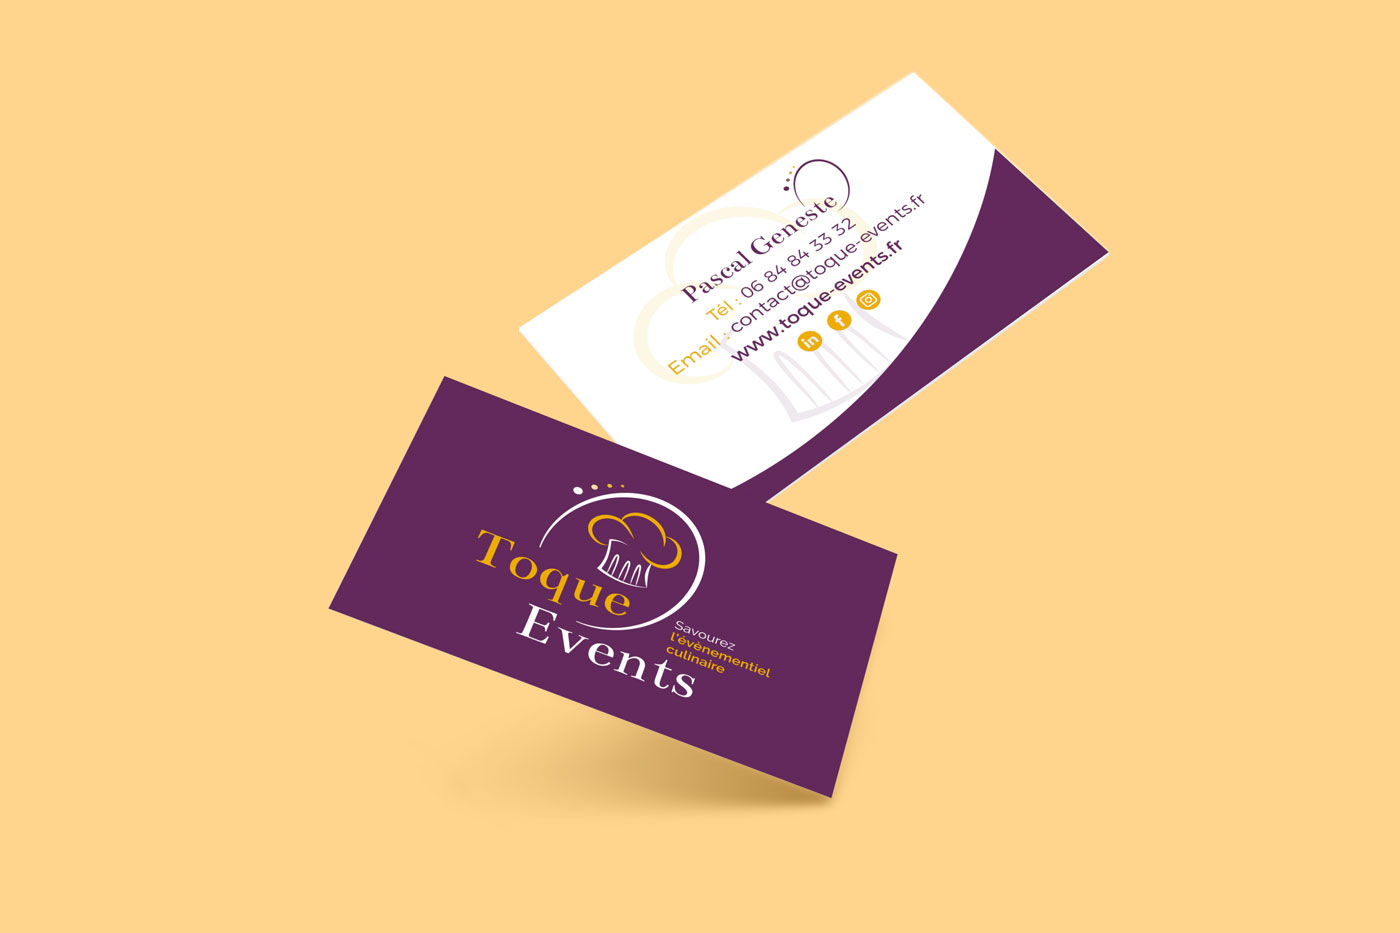 TOQUE EVENTS CARTE DE VISITE